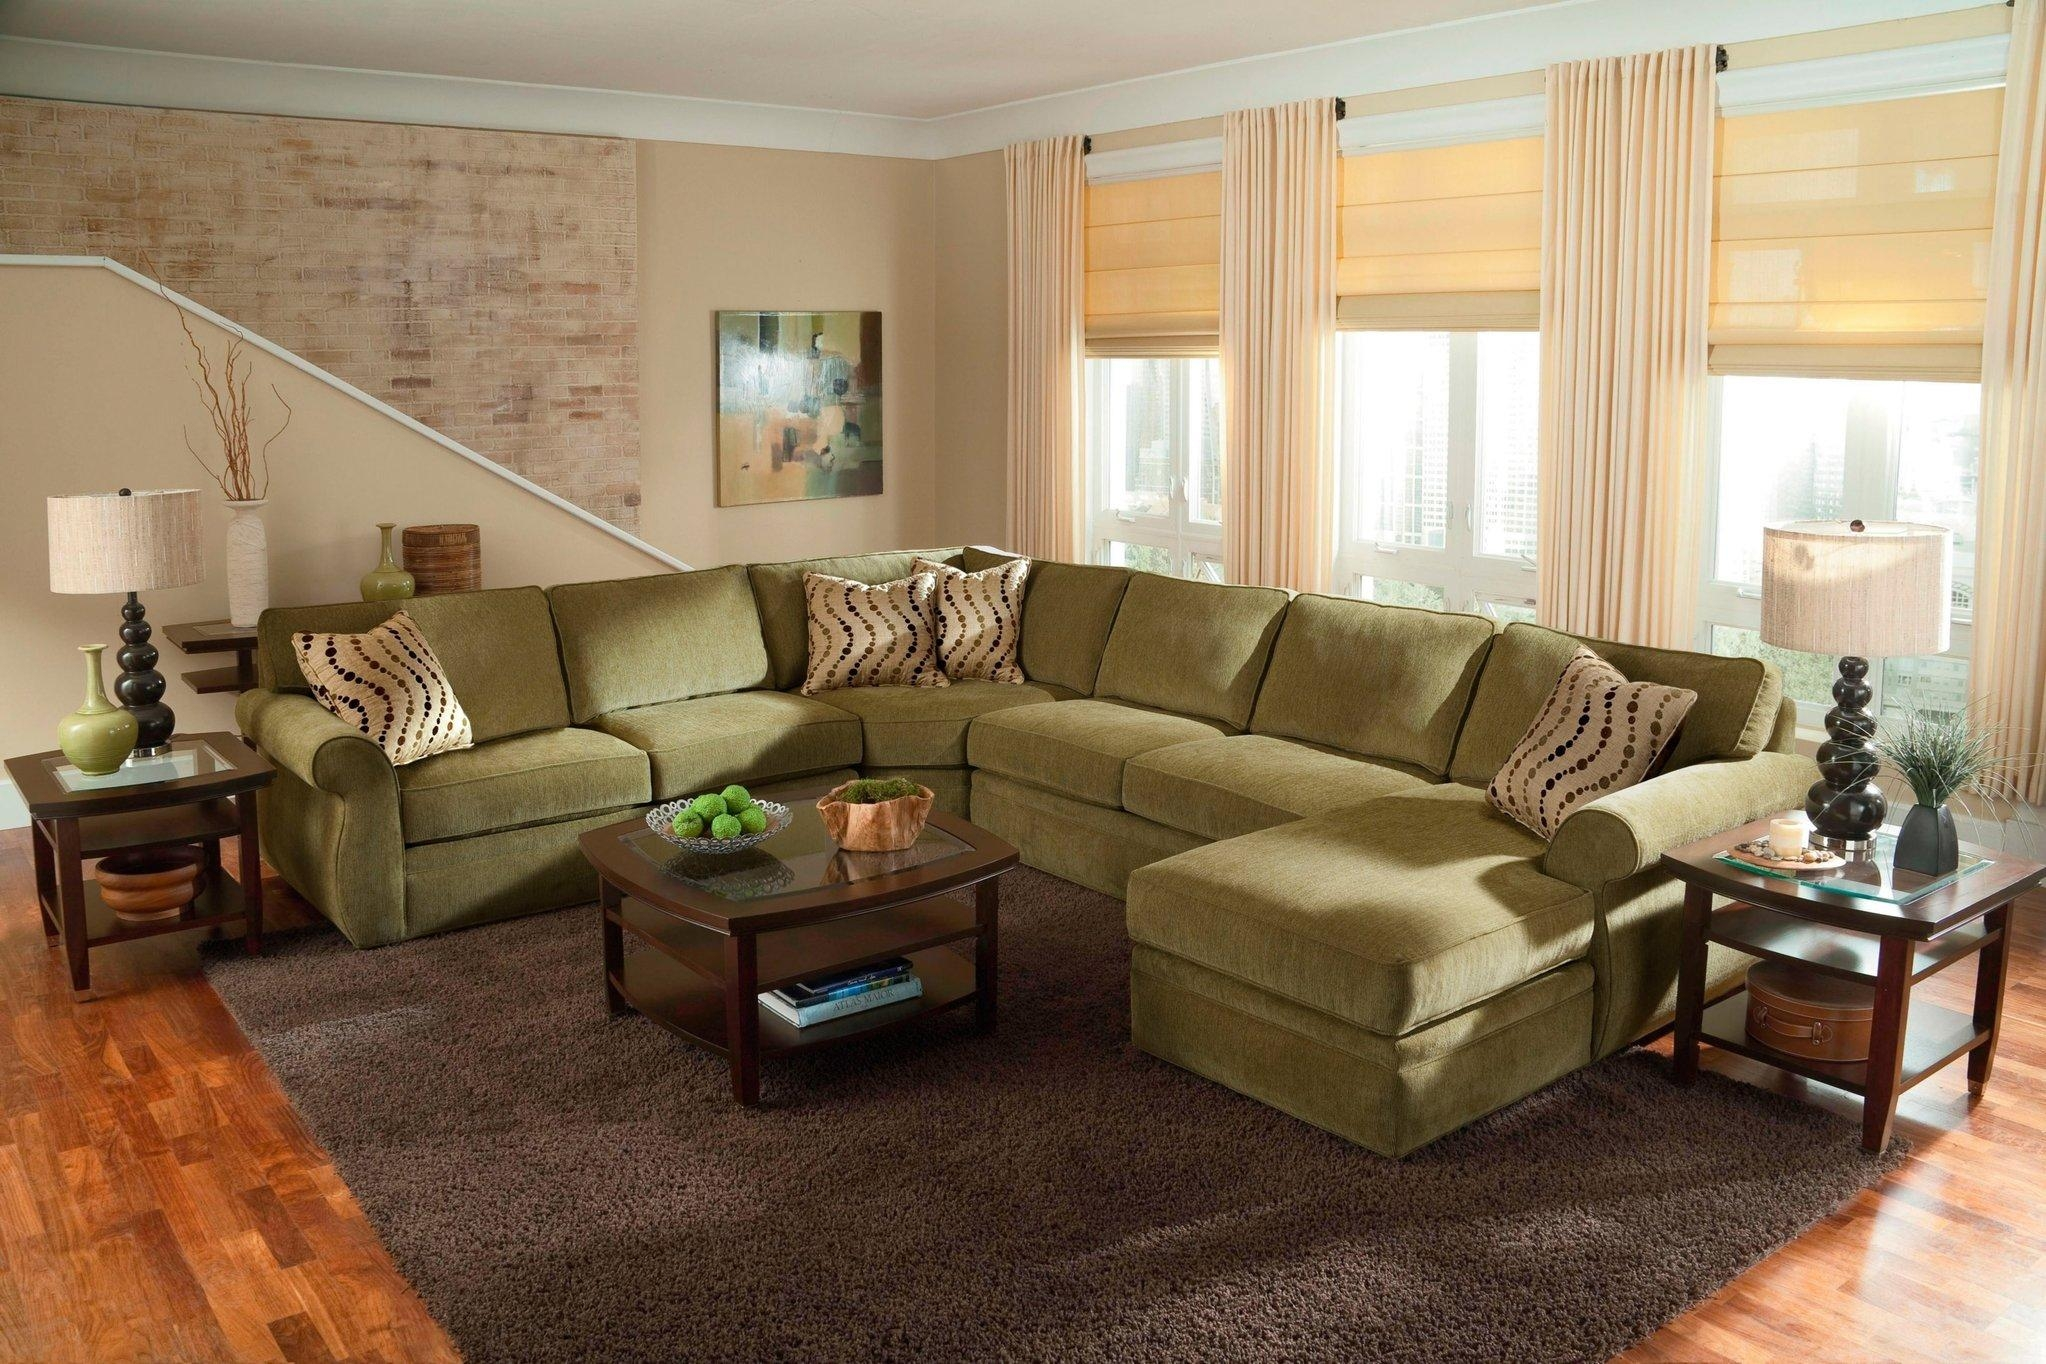 Sofas Center : Huge Brown Leather Sectional Sofa With Chaise Inside Huge Leather Sectional (Image 15 of 20)